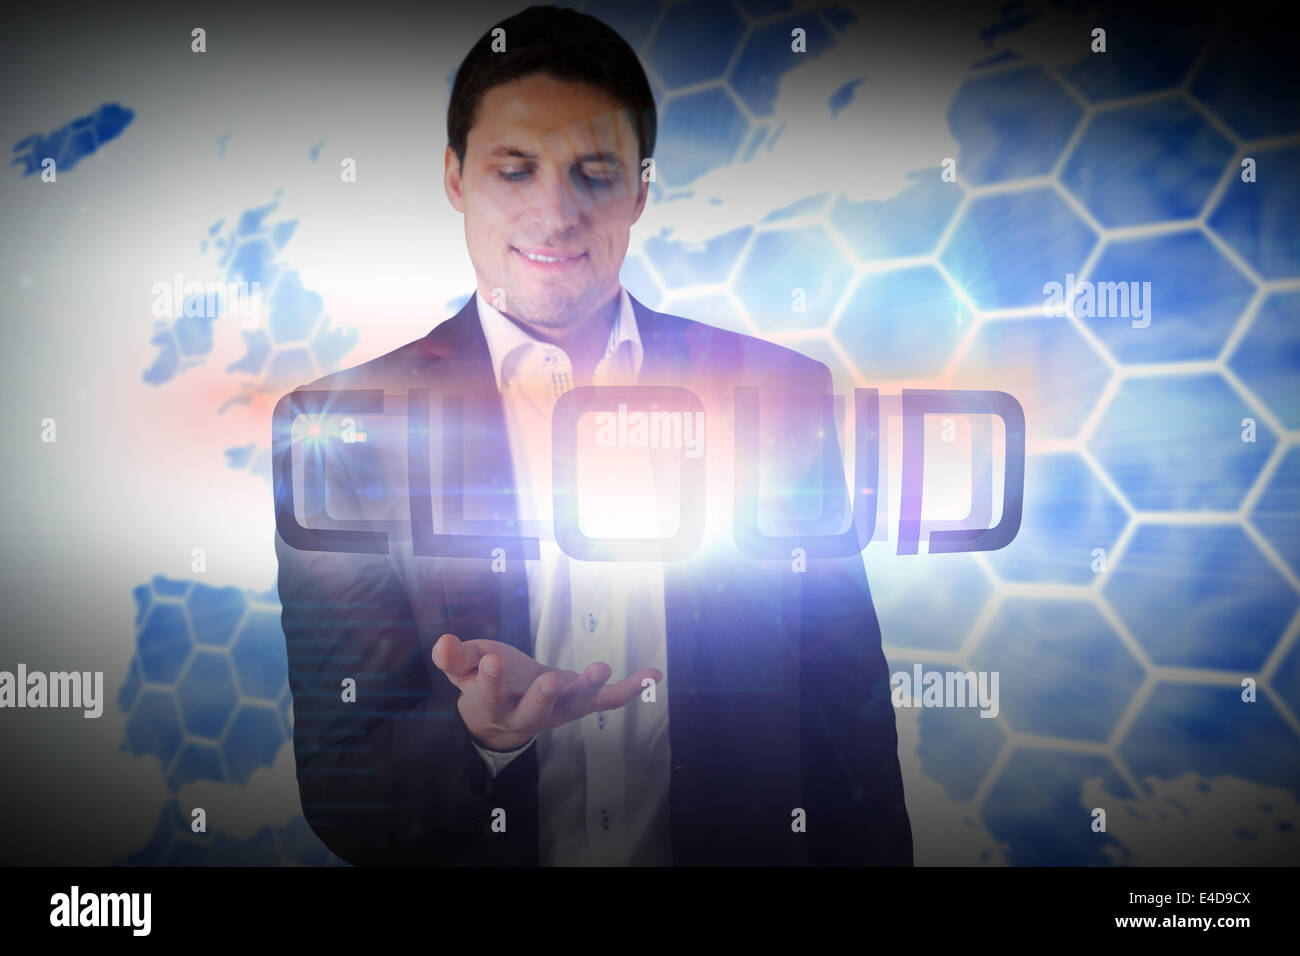 Businessman presenting the word cloud - Stock Image